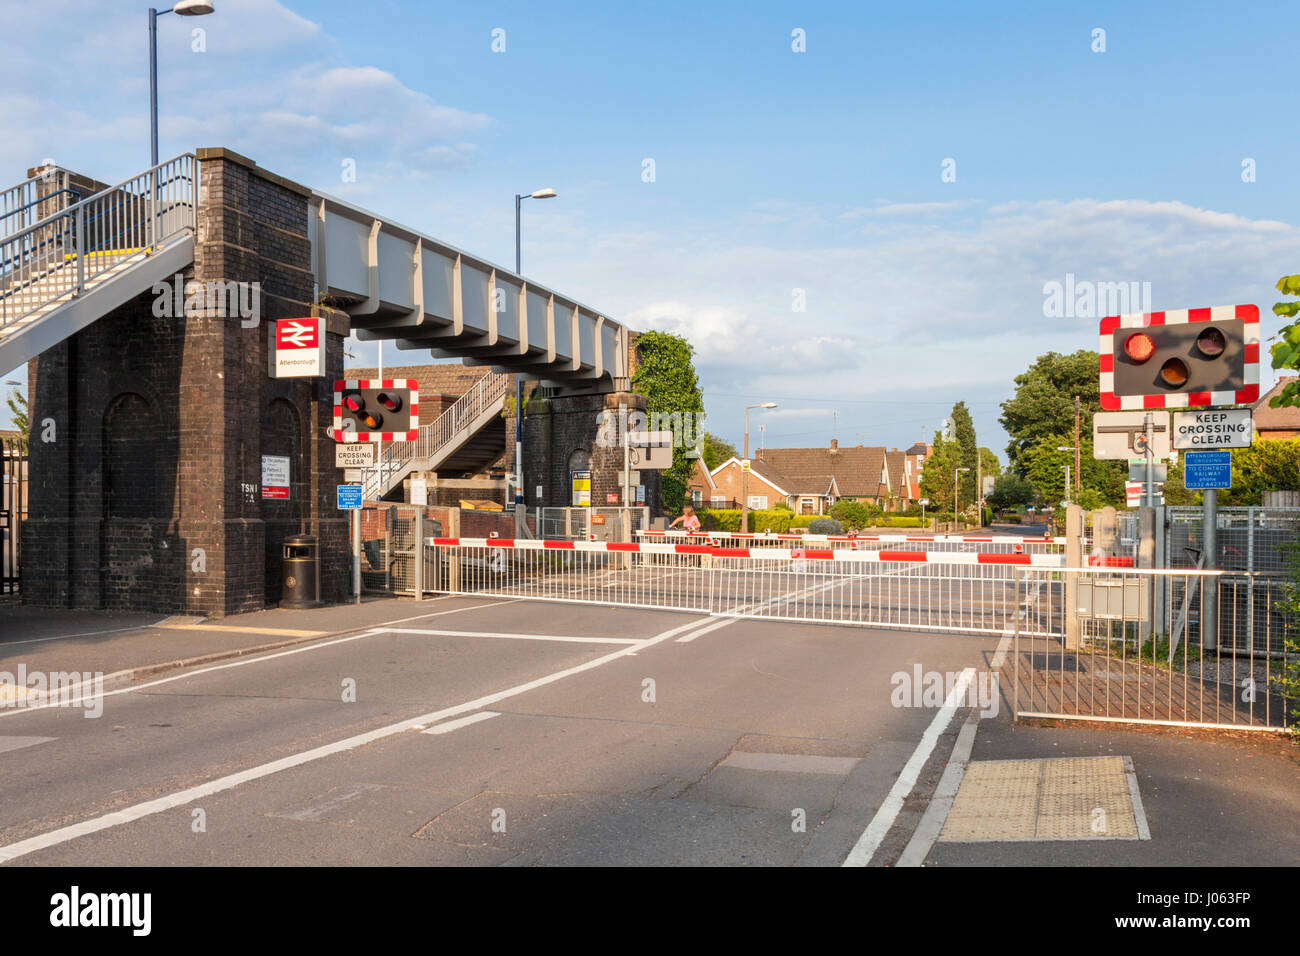 Road with level crossing barriers lowered, Attenborough Railway Station, Nottinghamshire, England, UK - Stock Image